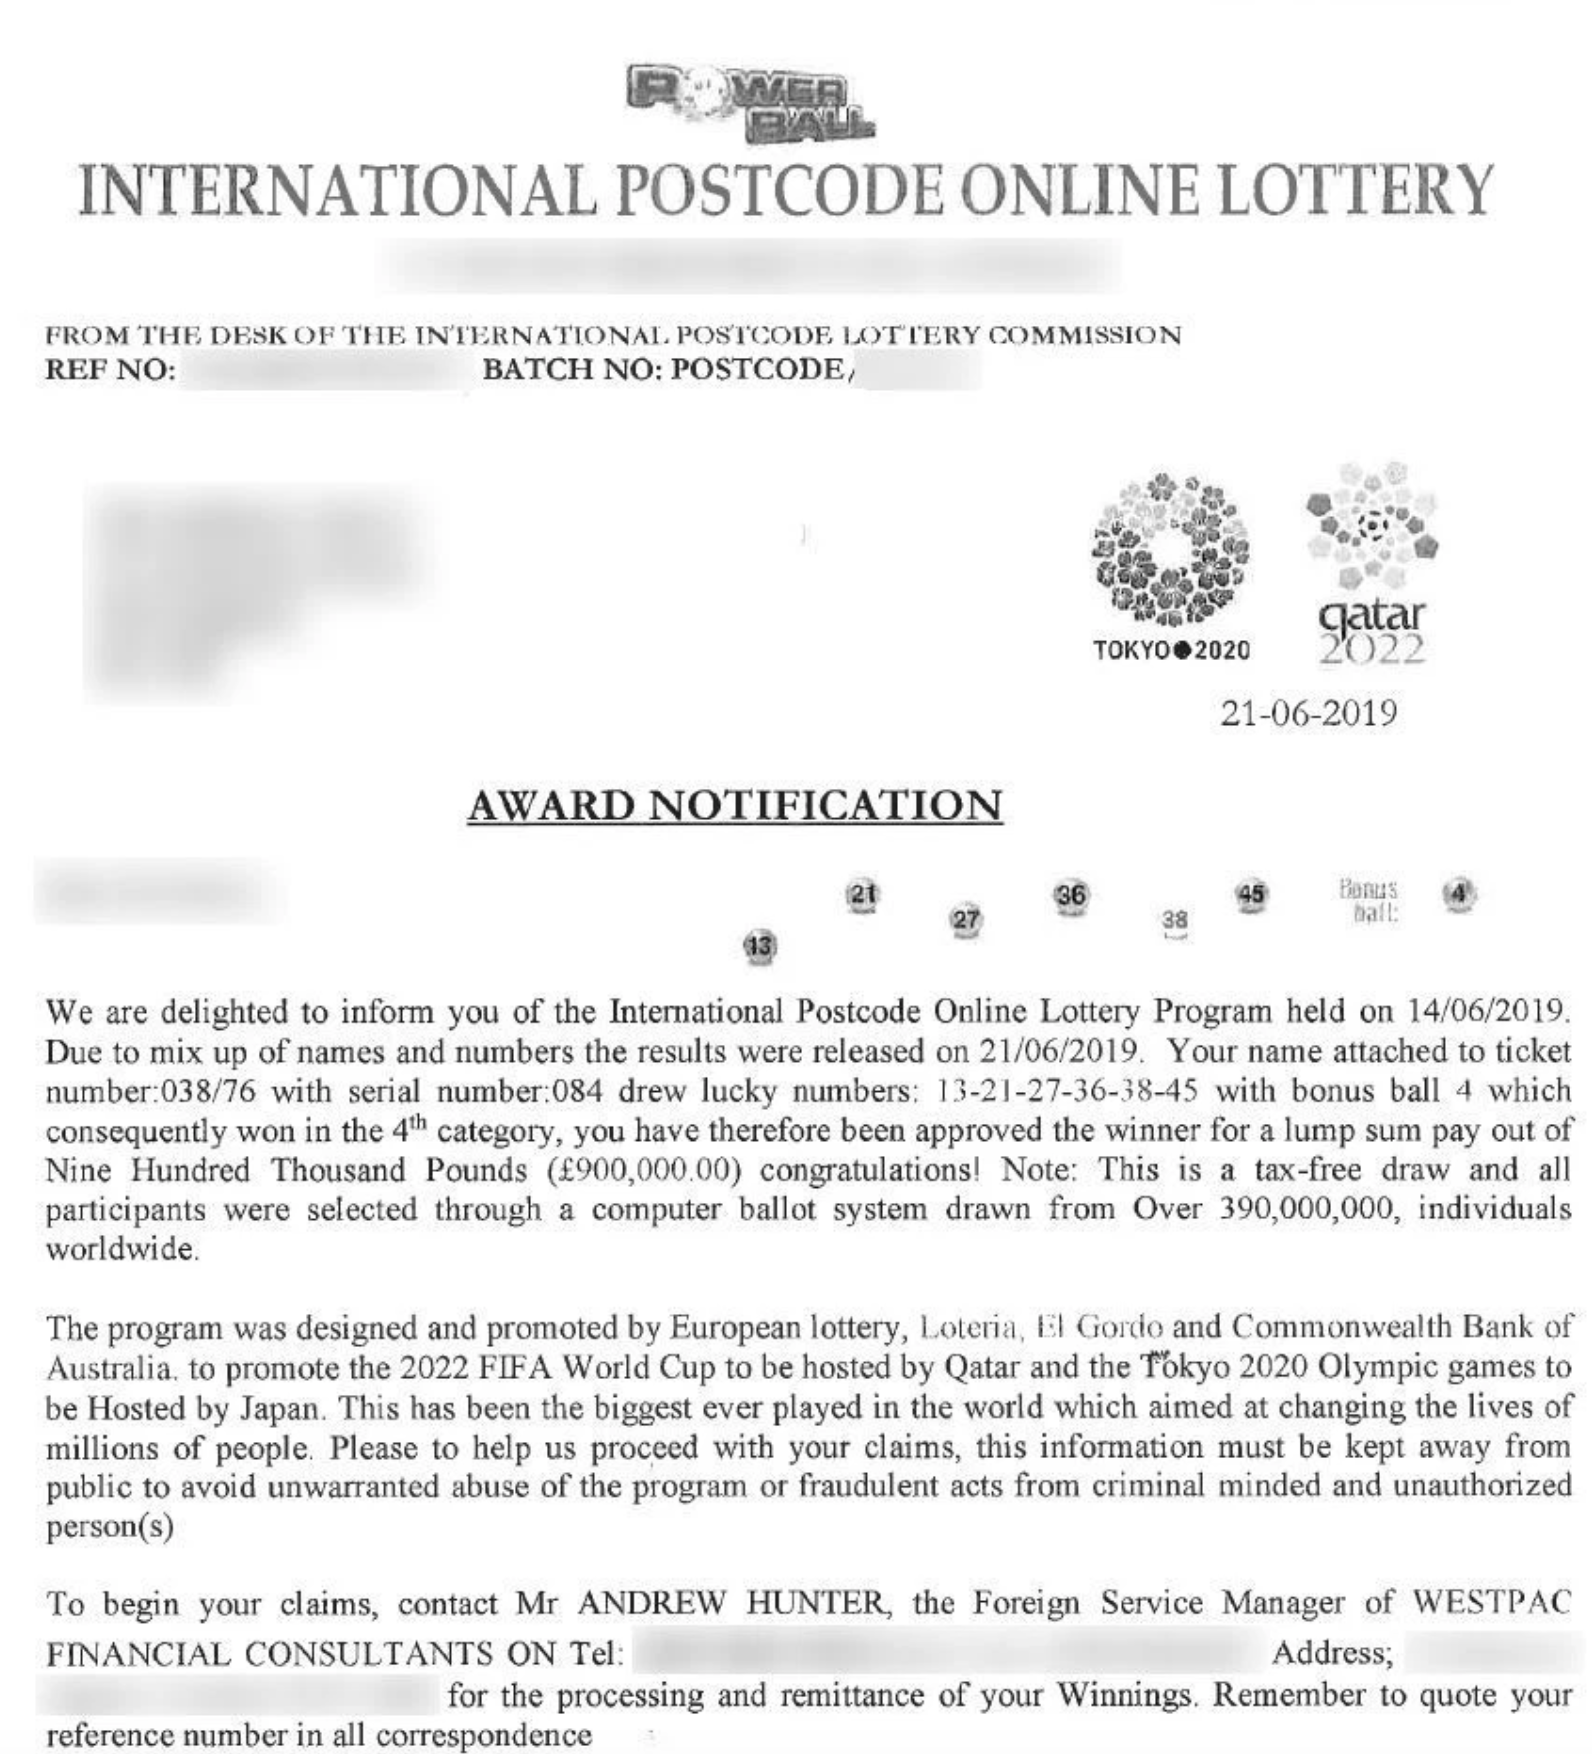 International Postcode Online Lottery scam